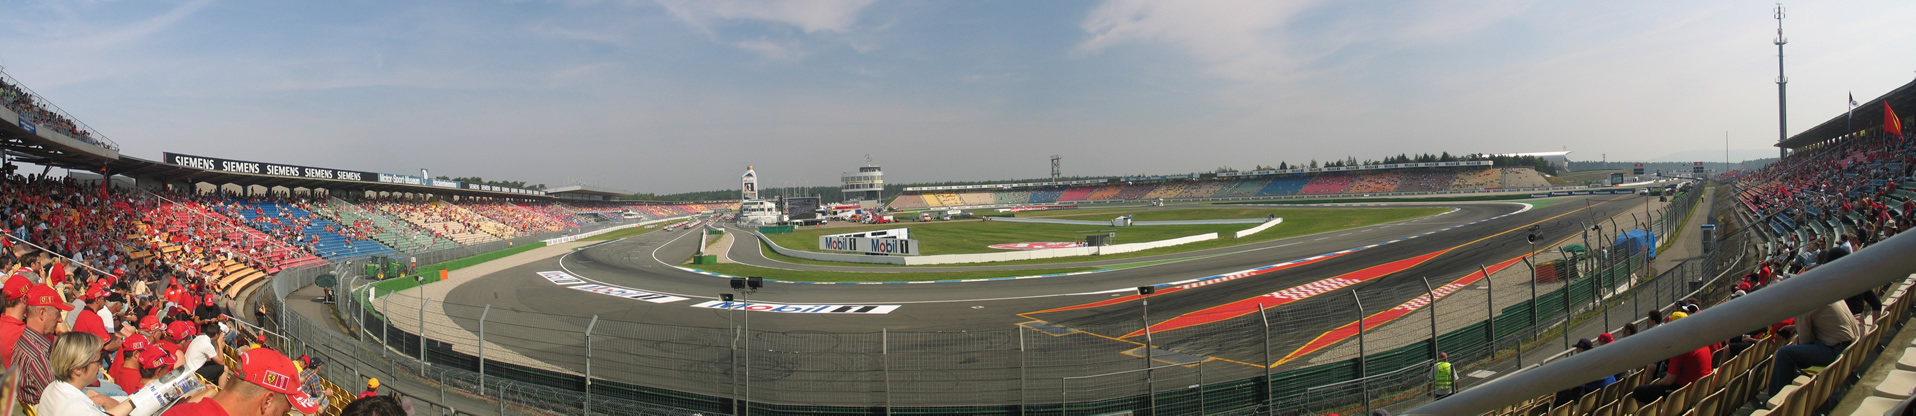 [IMG]http://upload.wikimedia.org/wikipedia/commons/7/7d/Hockenheim_Panorama.jpg[/IMG]